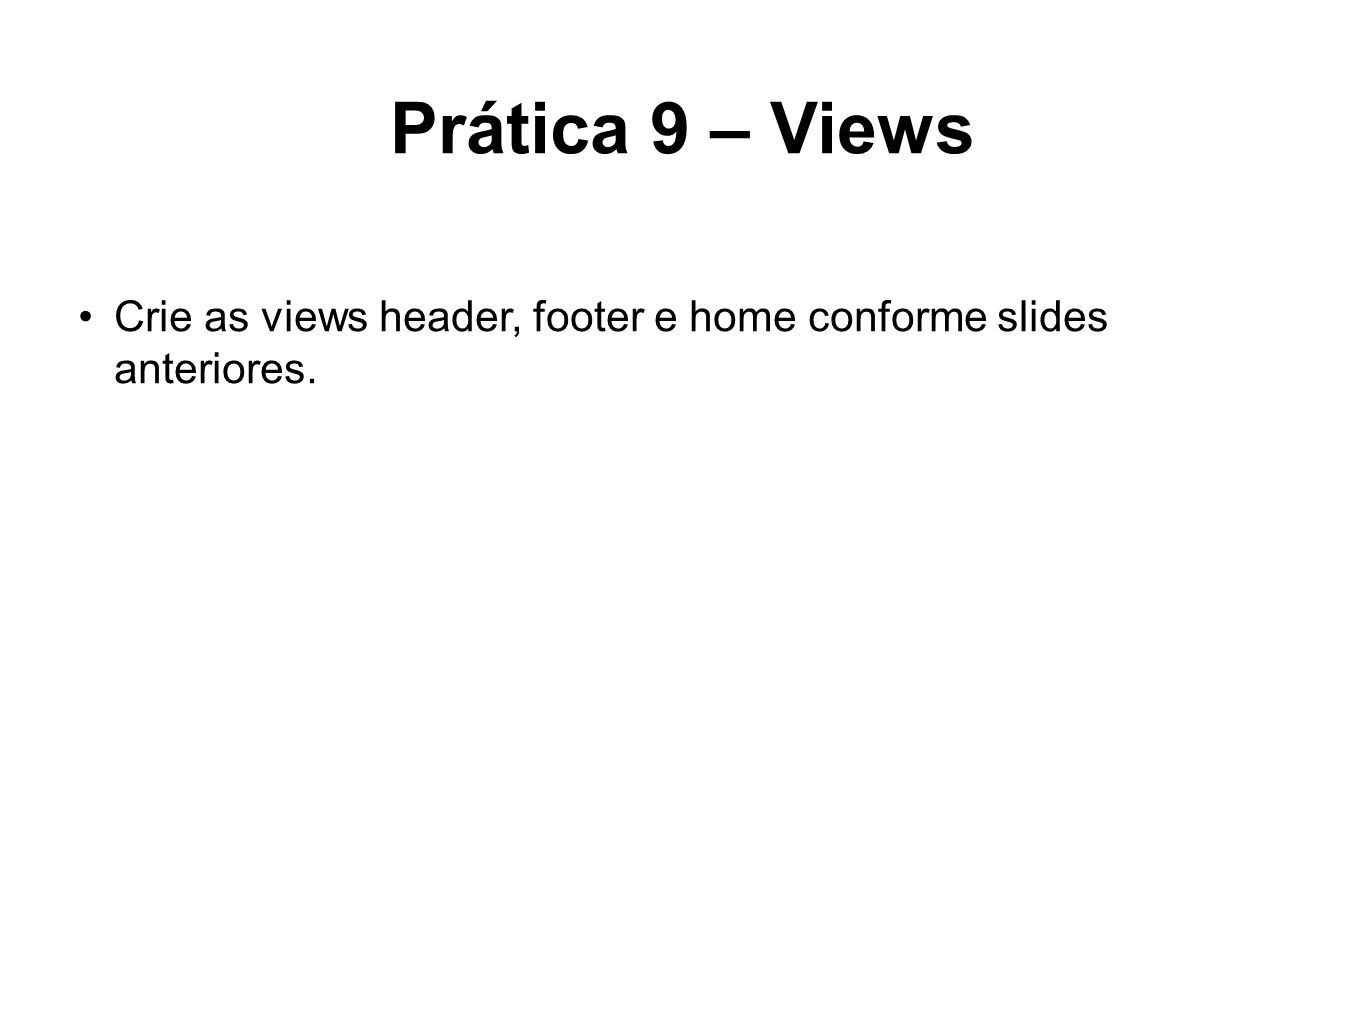 Prática 9 – Views Crie as views header, footer e home conforme slides anteriores.